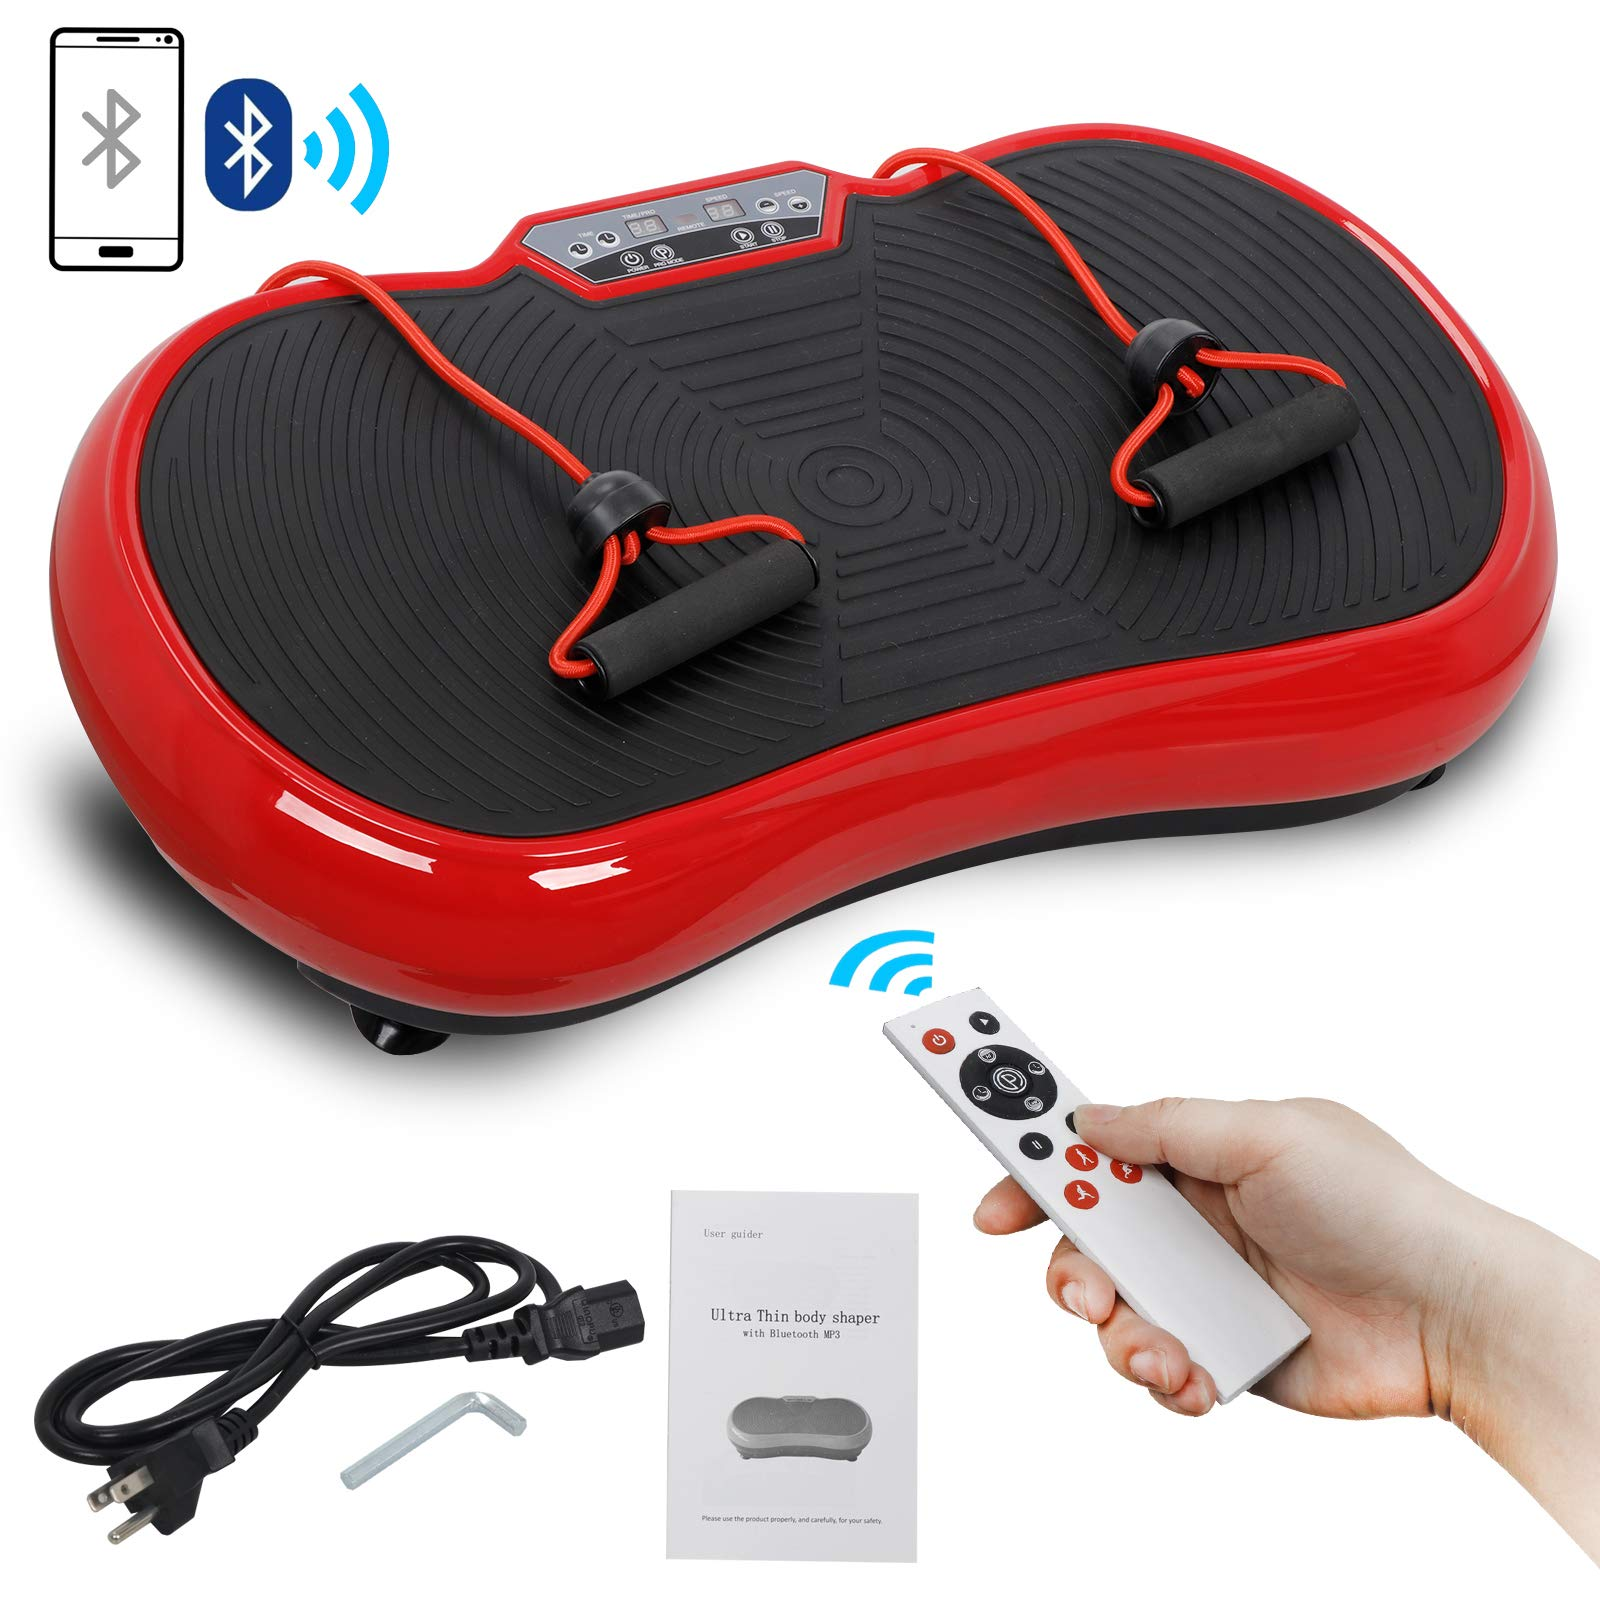 SUPER DEAL Crazy Work Out Fit Full Body Vibration Platform Massage Machine Fitness W/Bluetooth Red by SUPER DEAL (Image #1)